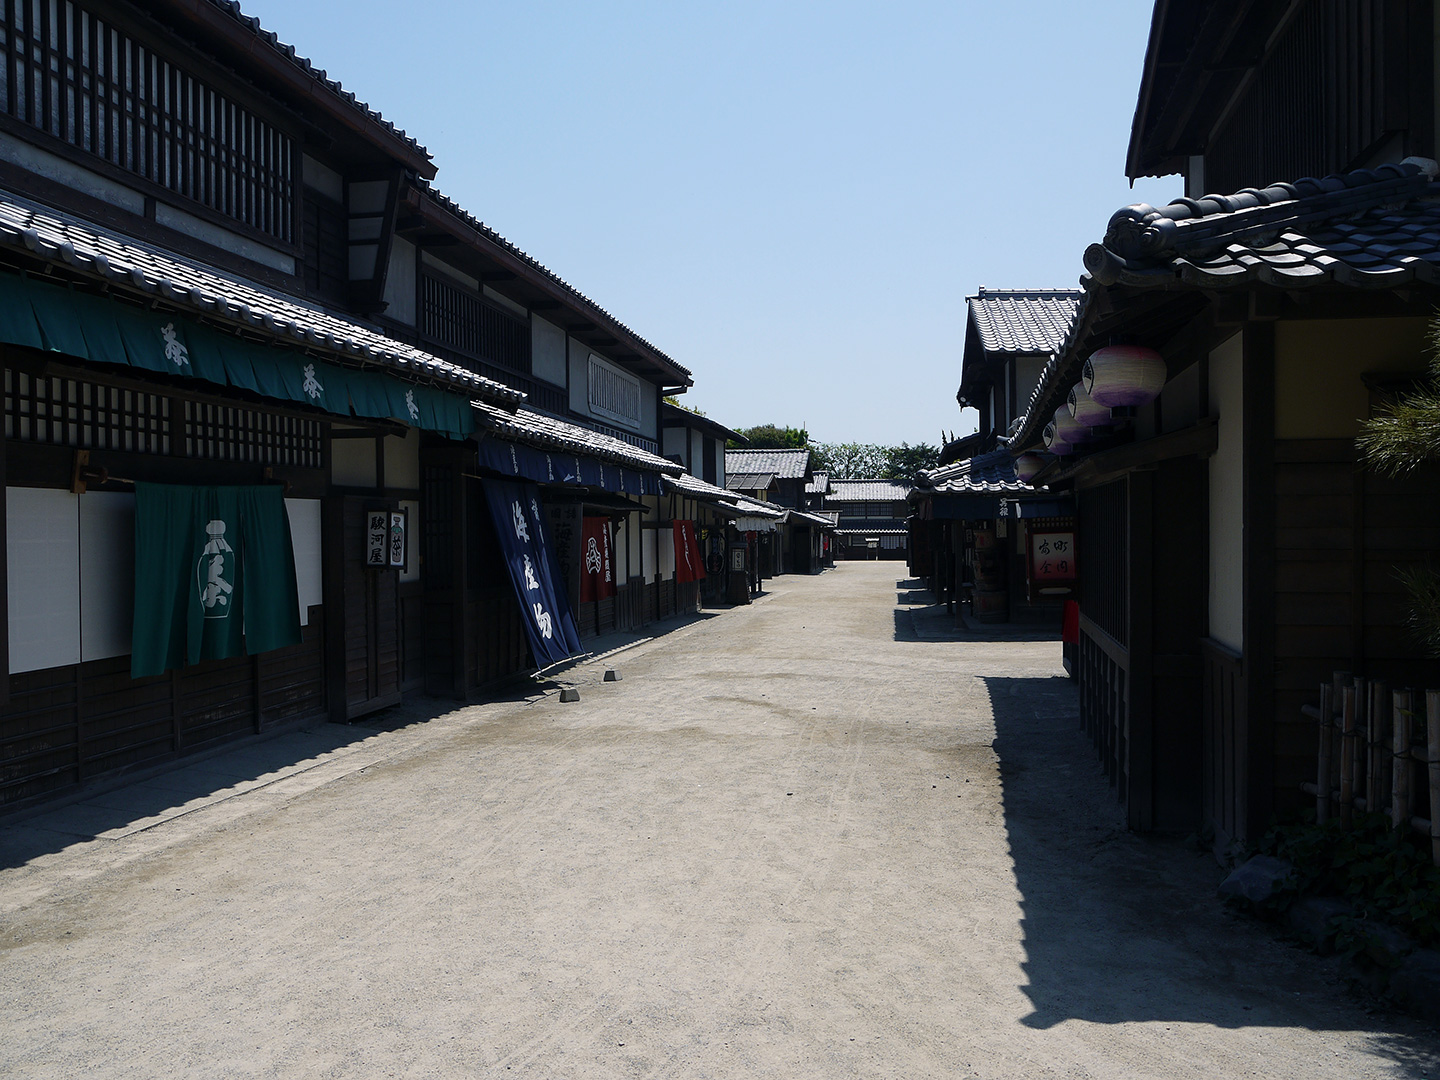 edo period film set